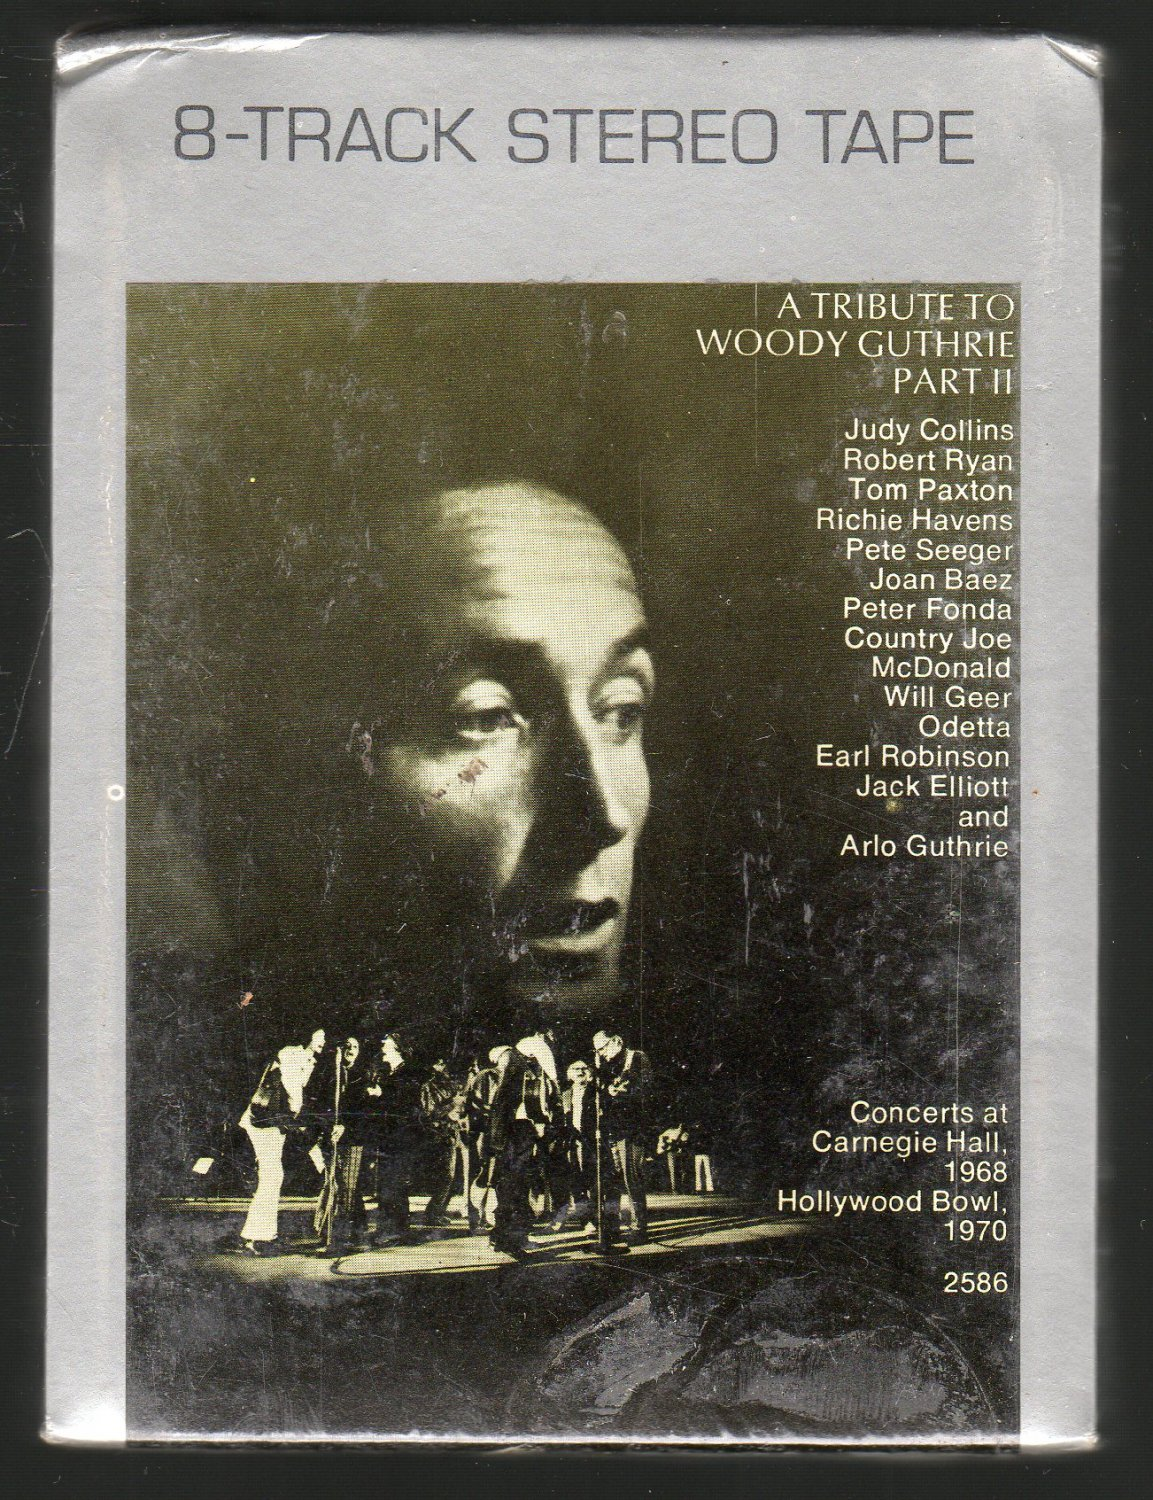 Woody Guthrie - A Tribute To Woody Guthrie Various Part II Sealed 8-track tape